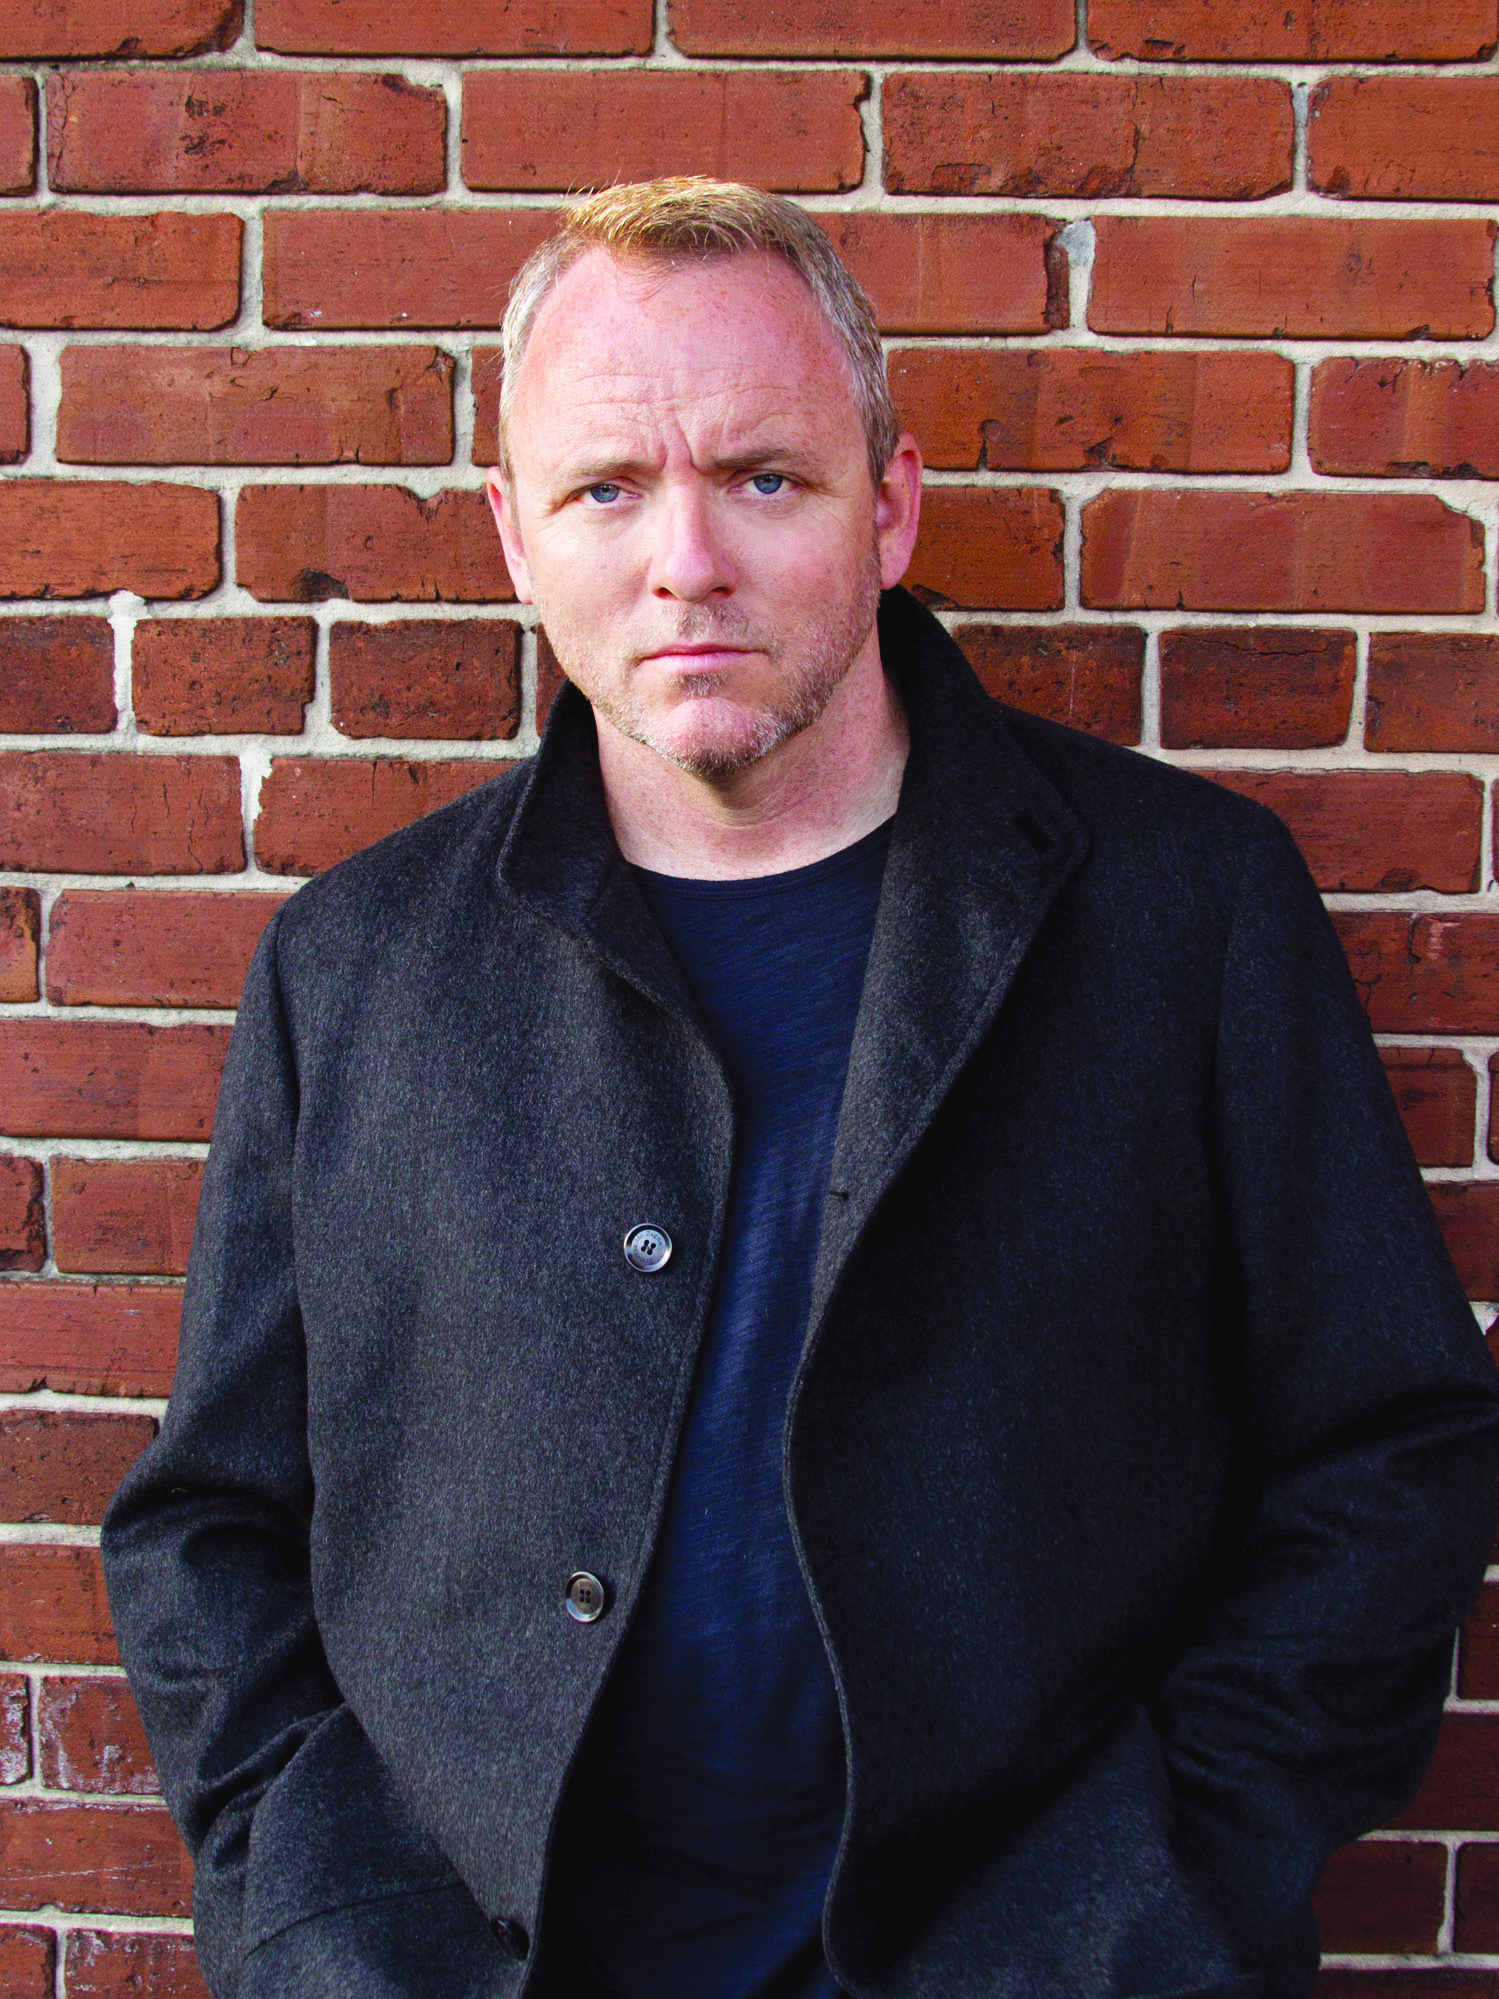 Dennis Lehane is the best-selling author of Mystic River, Shutter Island and Gone, Baby, Gone, all of which have been adapted for the screen.